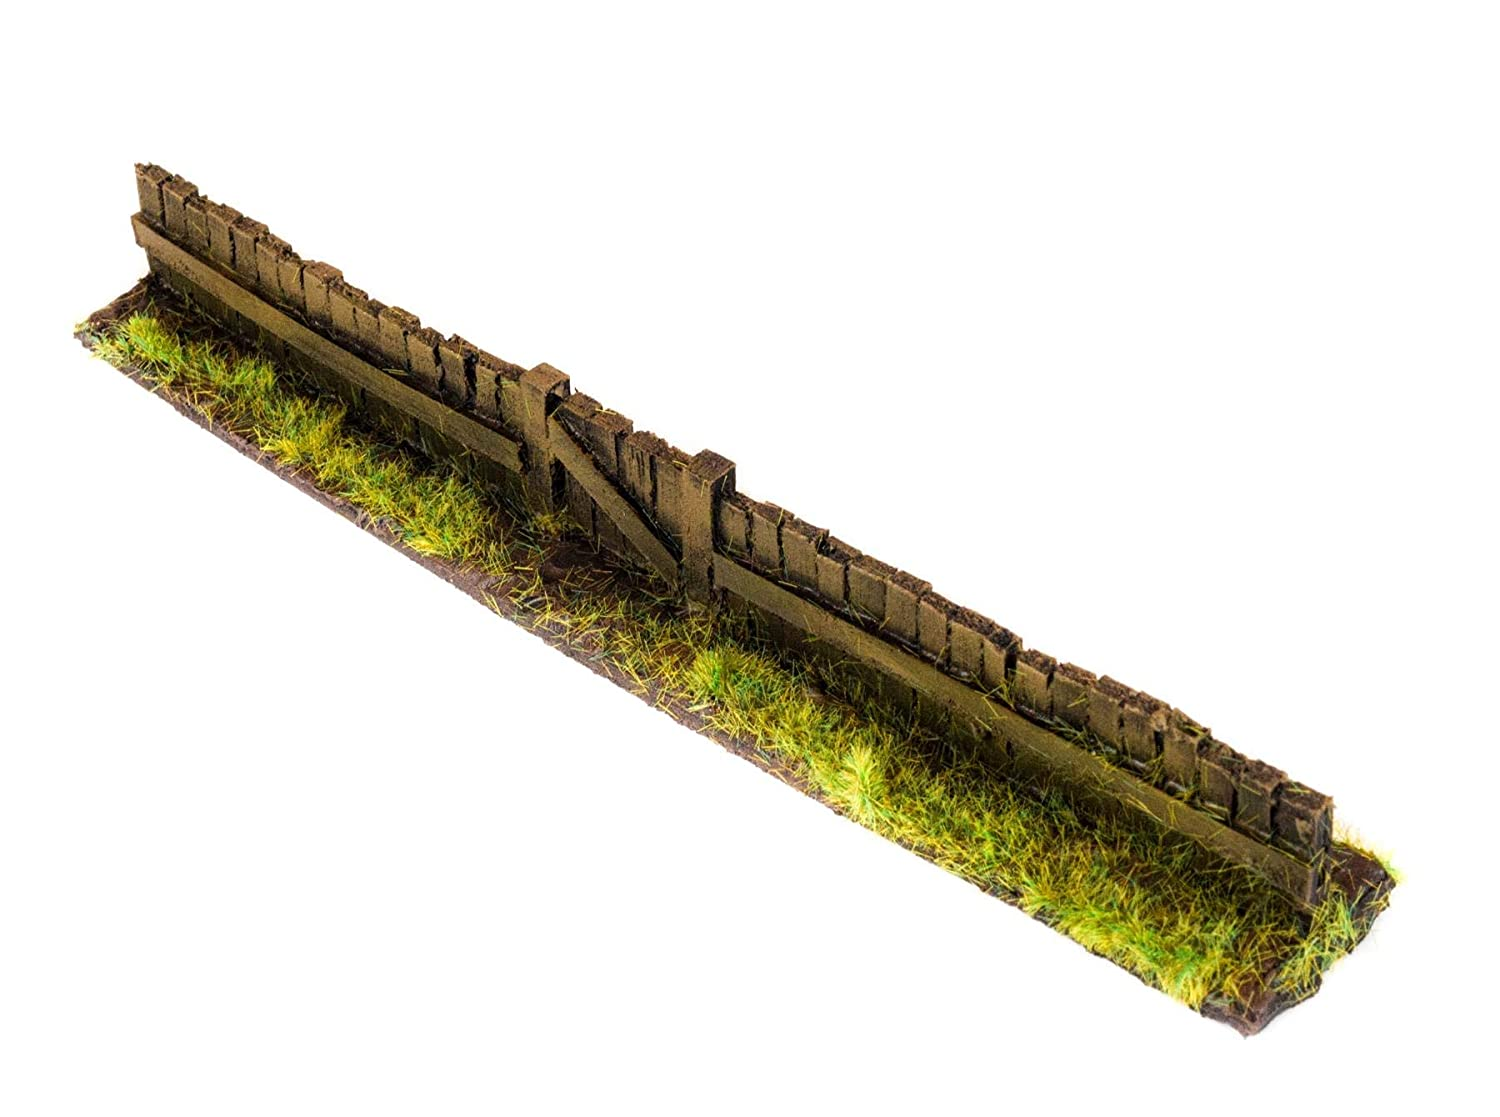 Wooden Fence Section with Gate by WWS Pack of 3 - Dioramas, Layouts, Terrain, B0727TRKNR